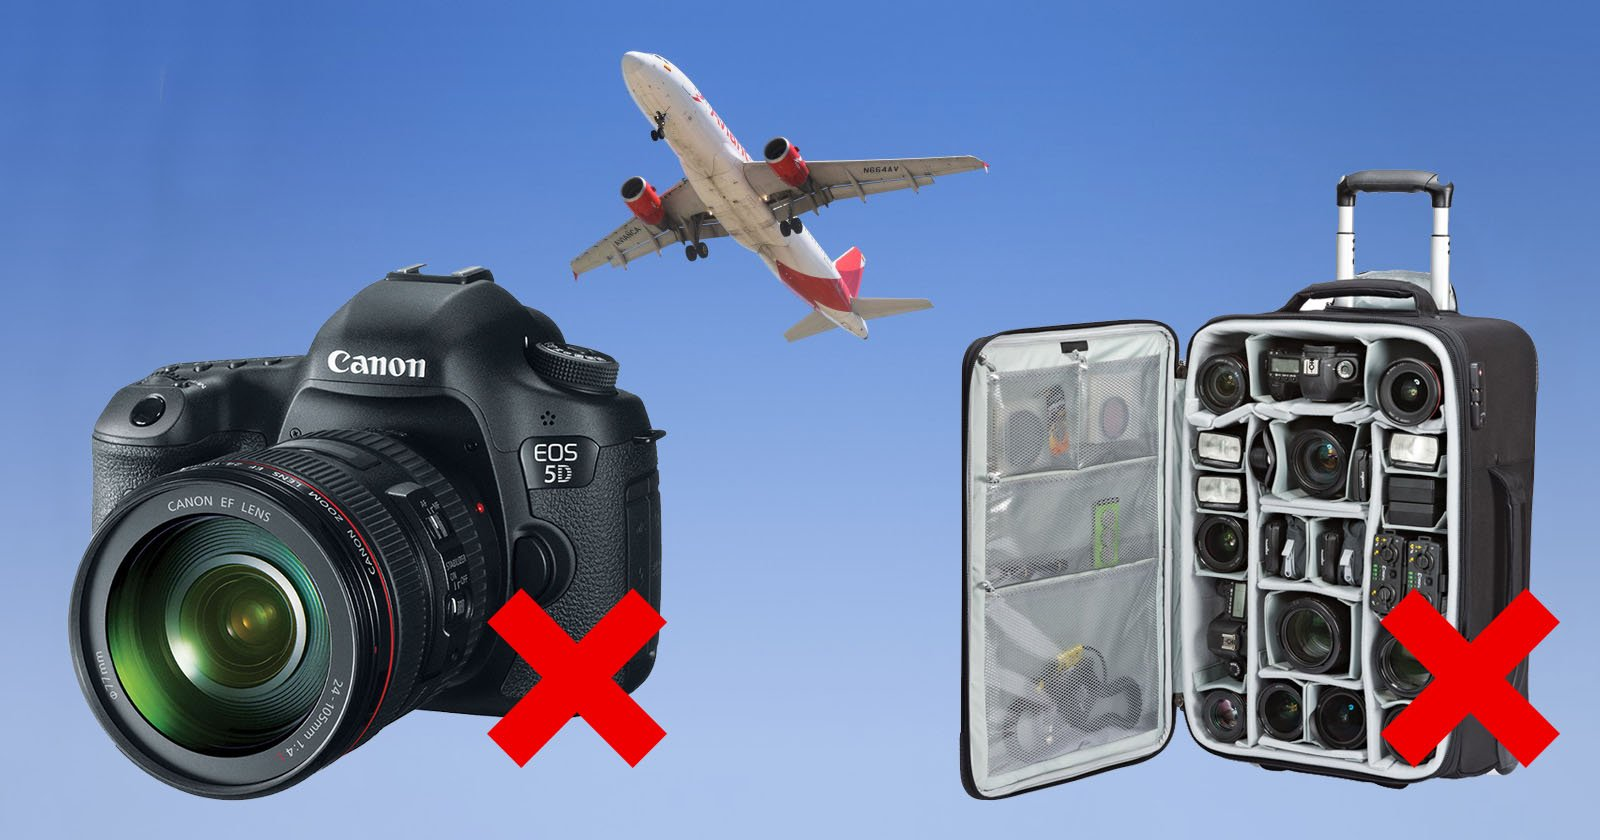 US Urging Airlines to Ban Cameras in Checked Bags